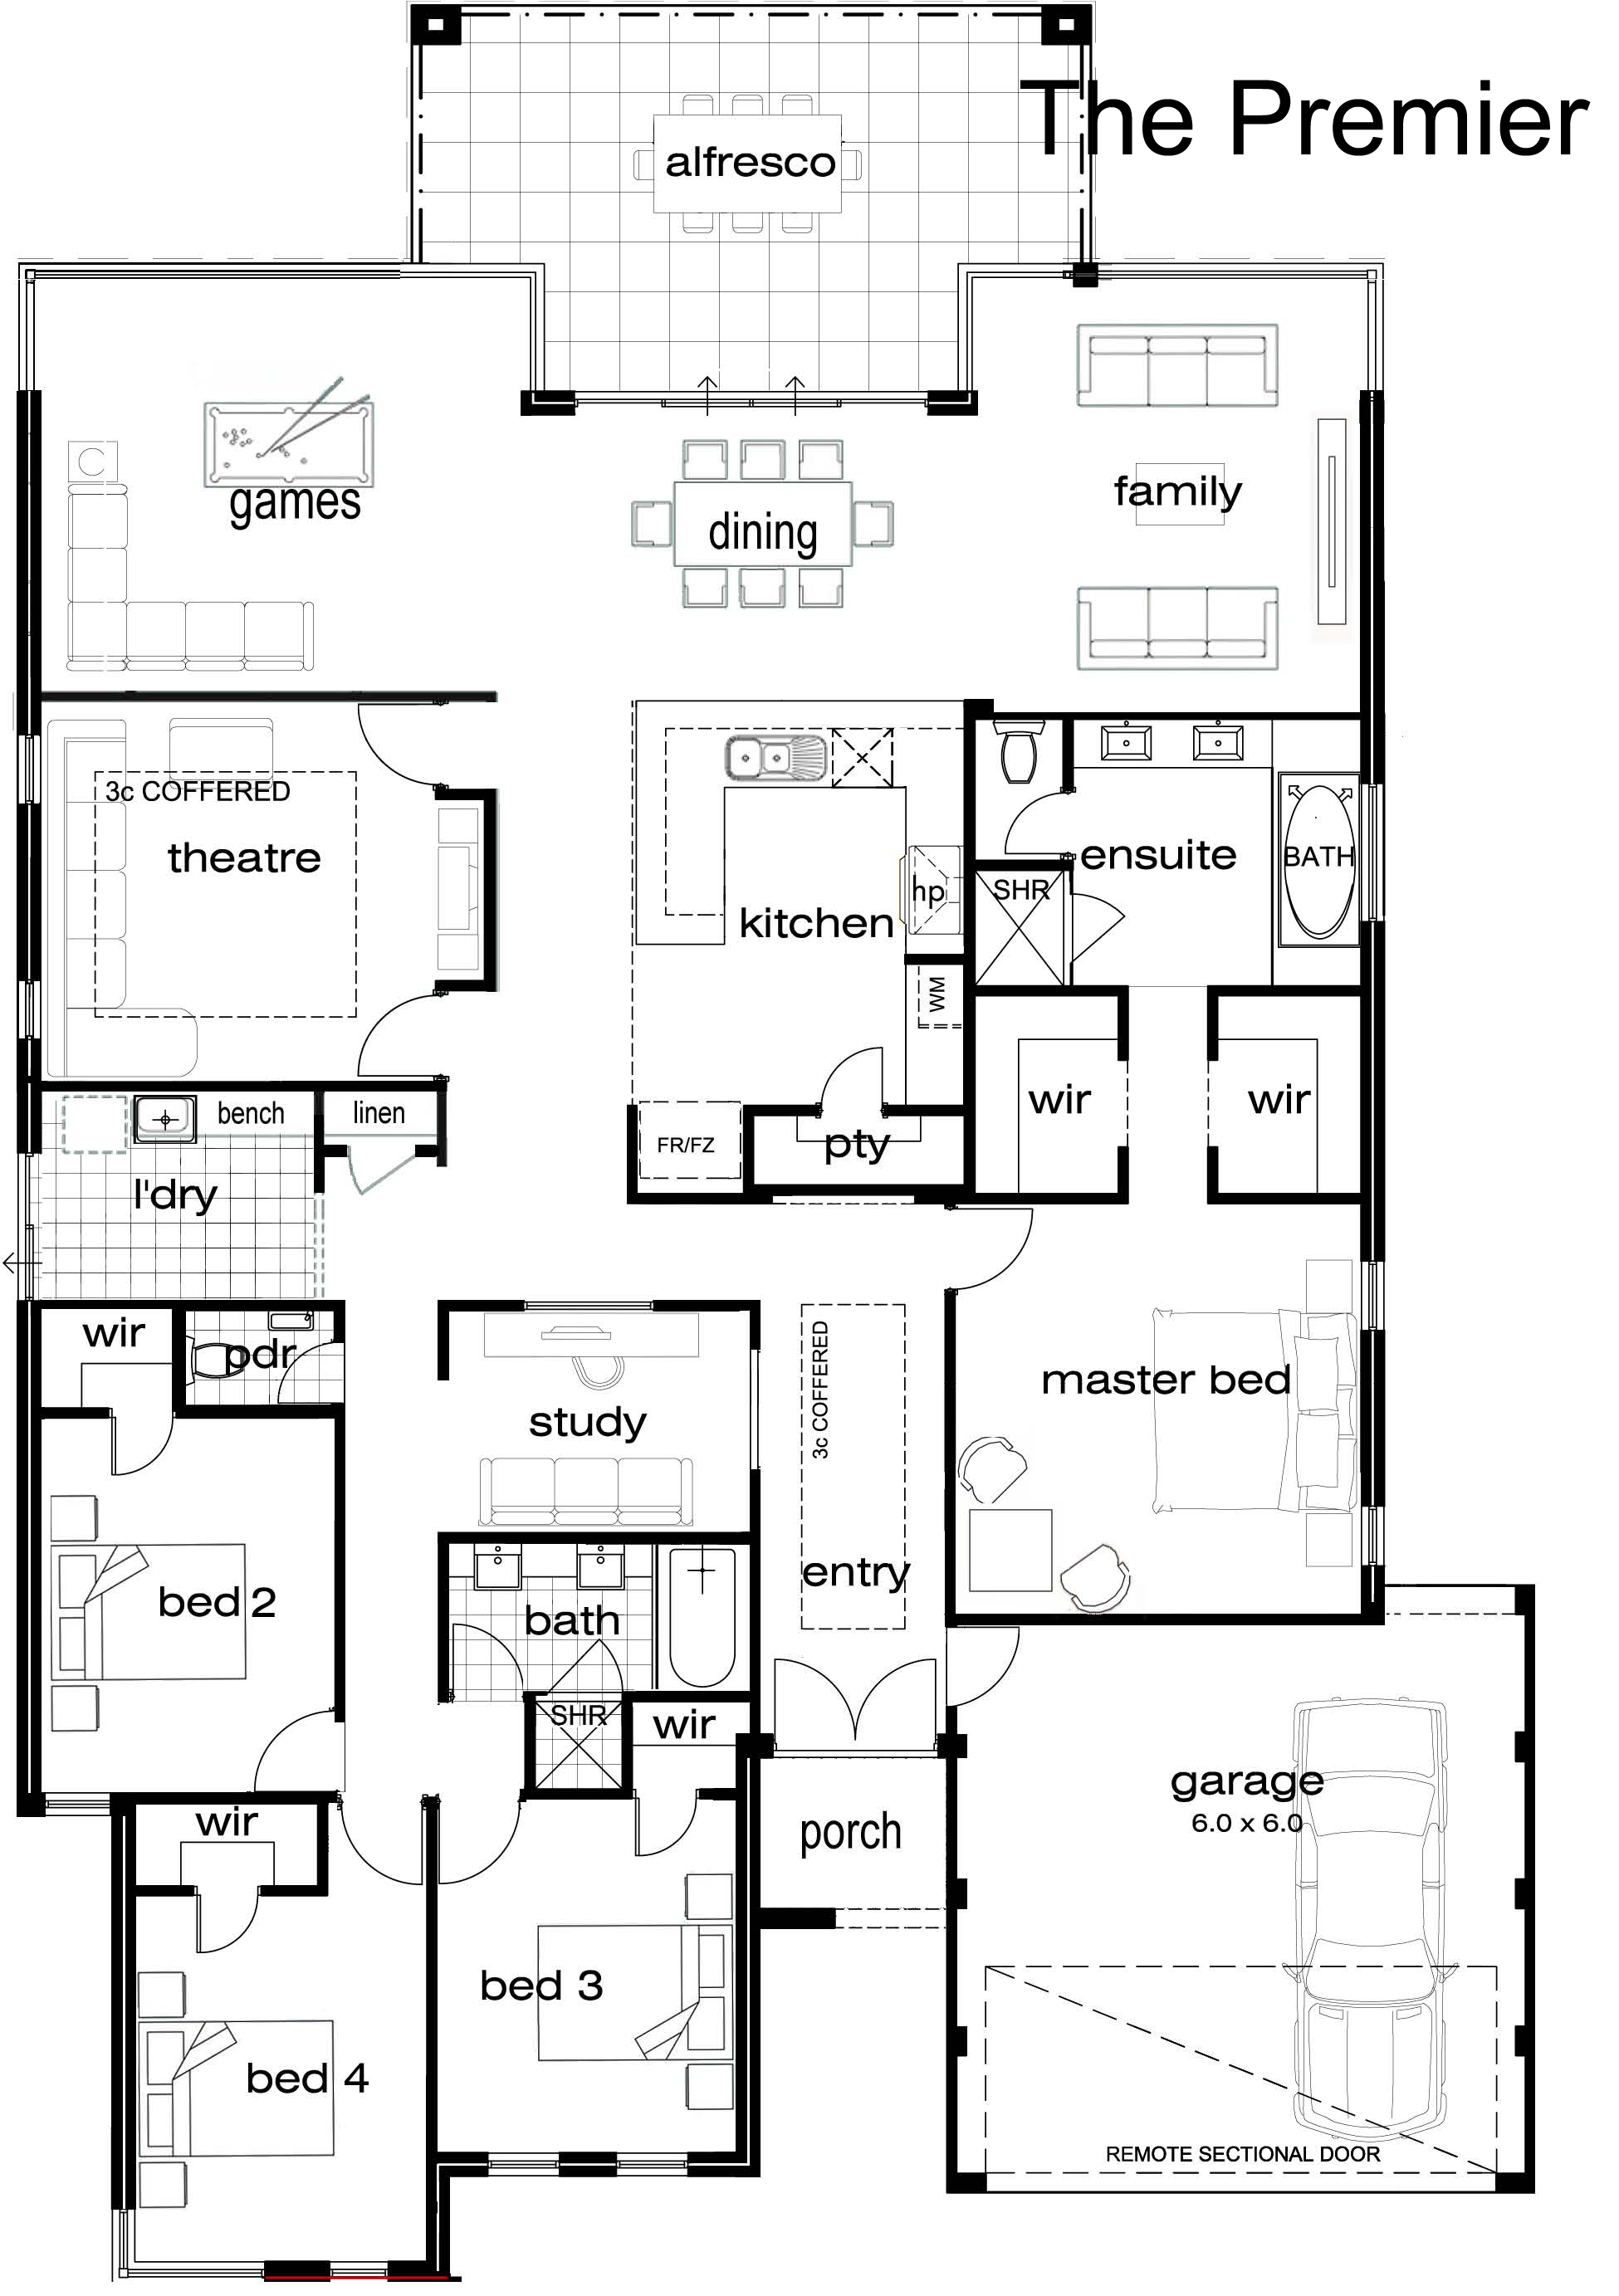 Sip The Premier Single Story House Floor Plans New House Plans Basement House Plans